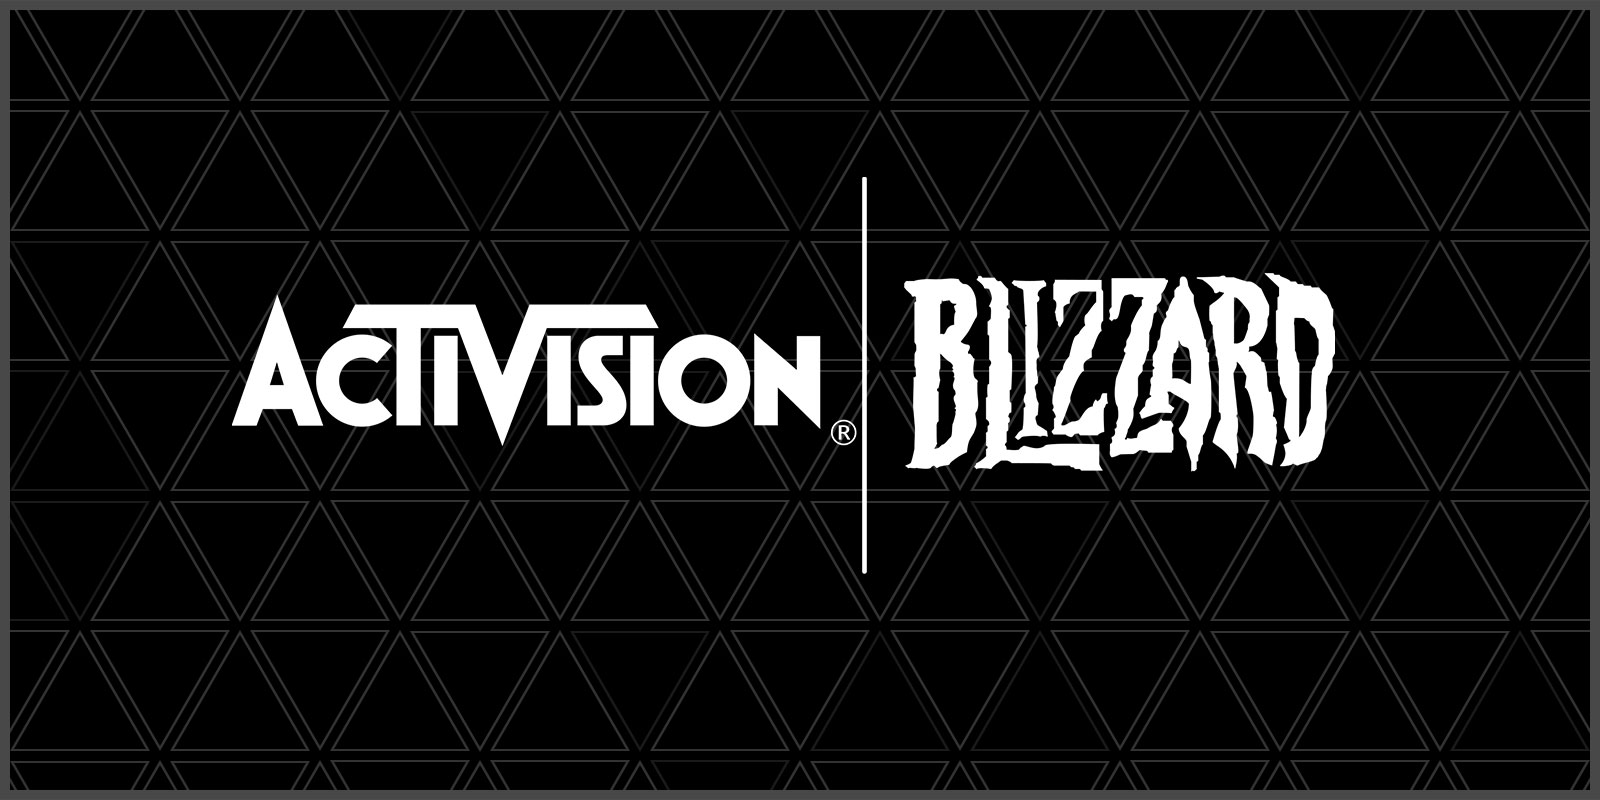 Activision Blizzard Made $4 Billion in 2017 on Microtransactions